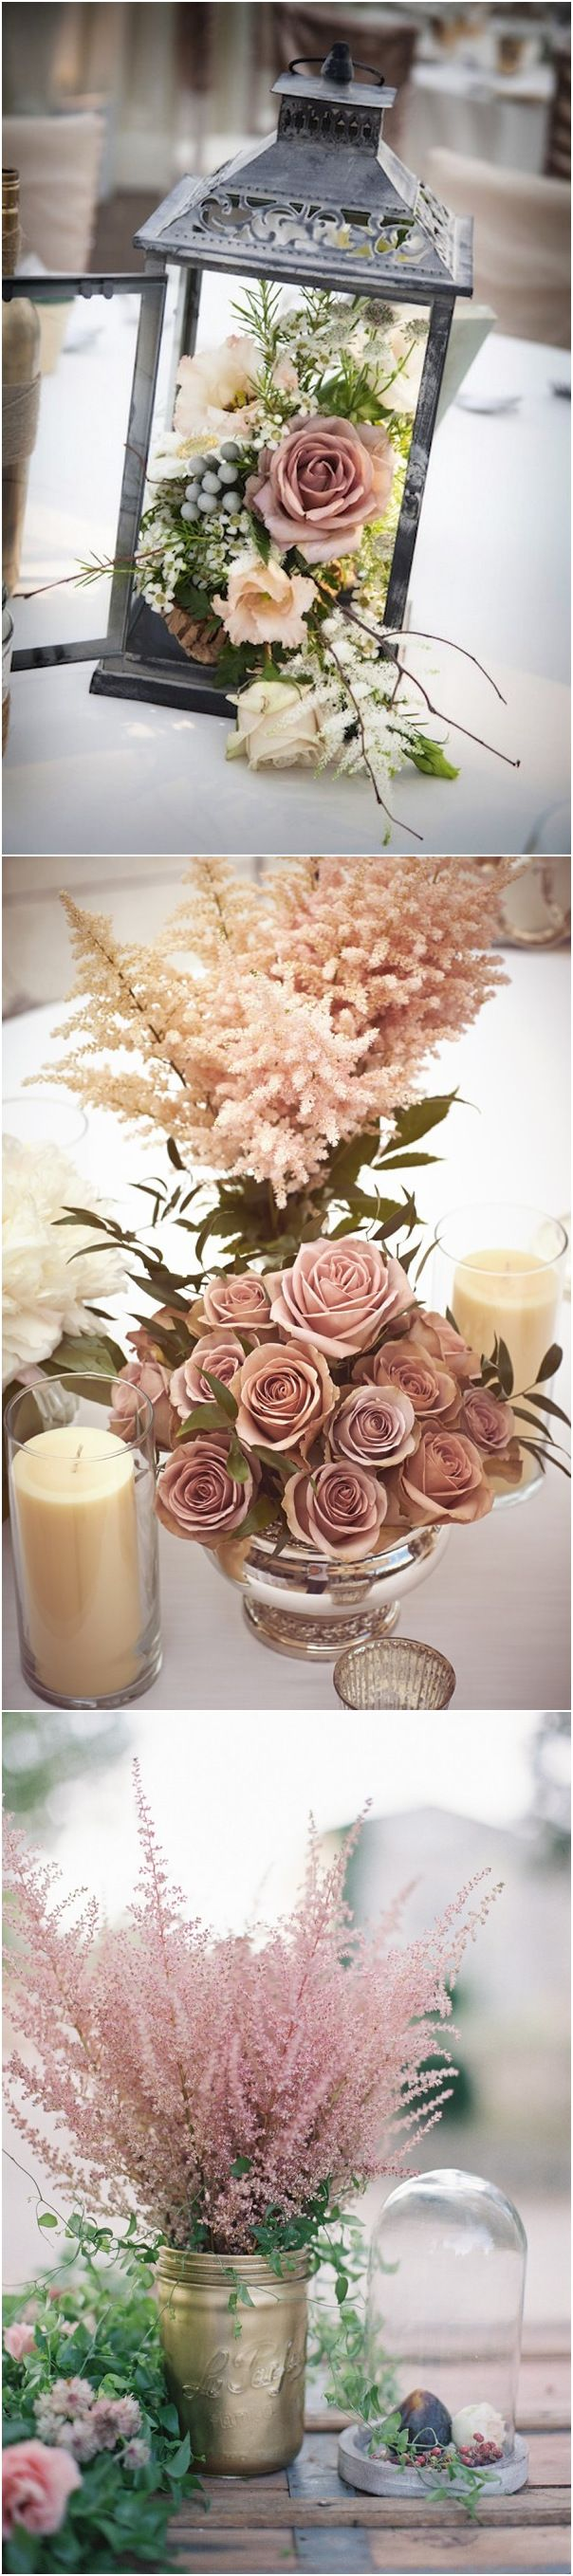 Wedding decoration ideas colors  Trending Dusty Rose Wedding Color Ideas for   Page  of